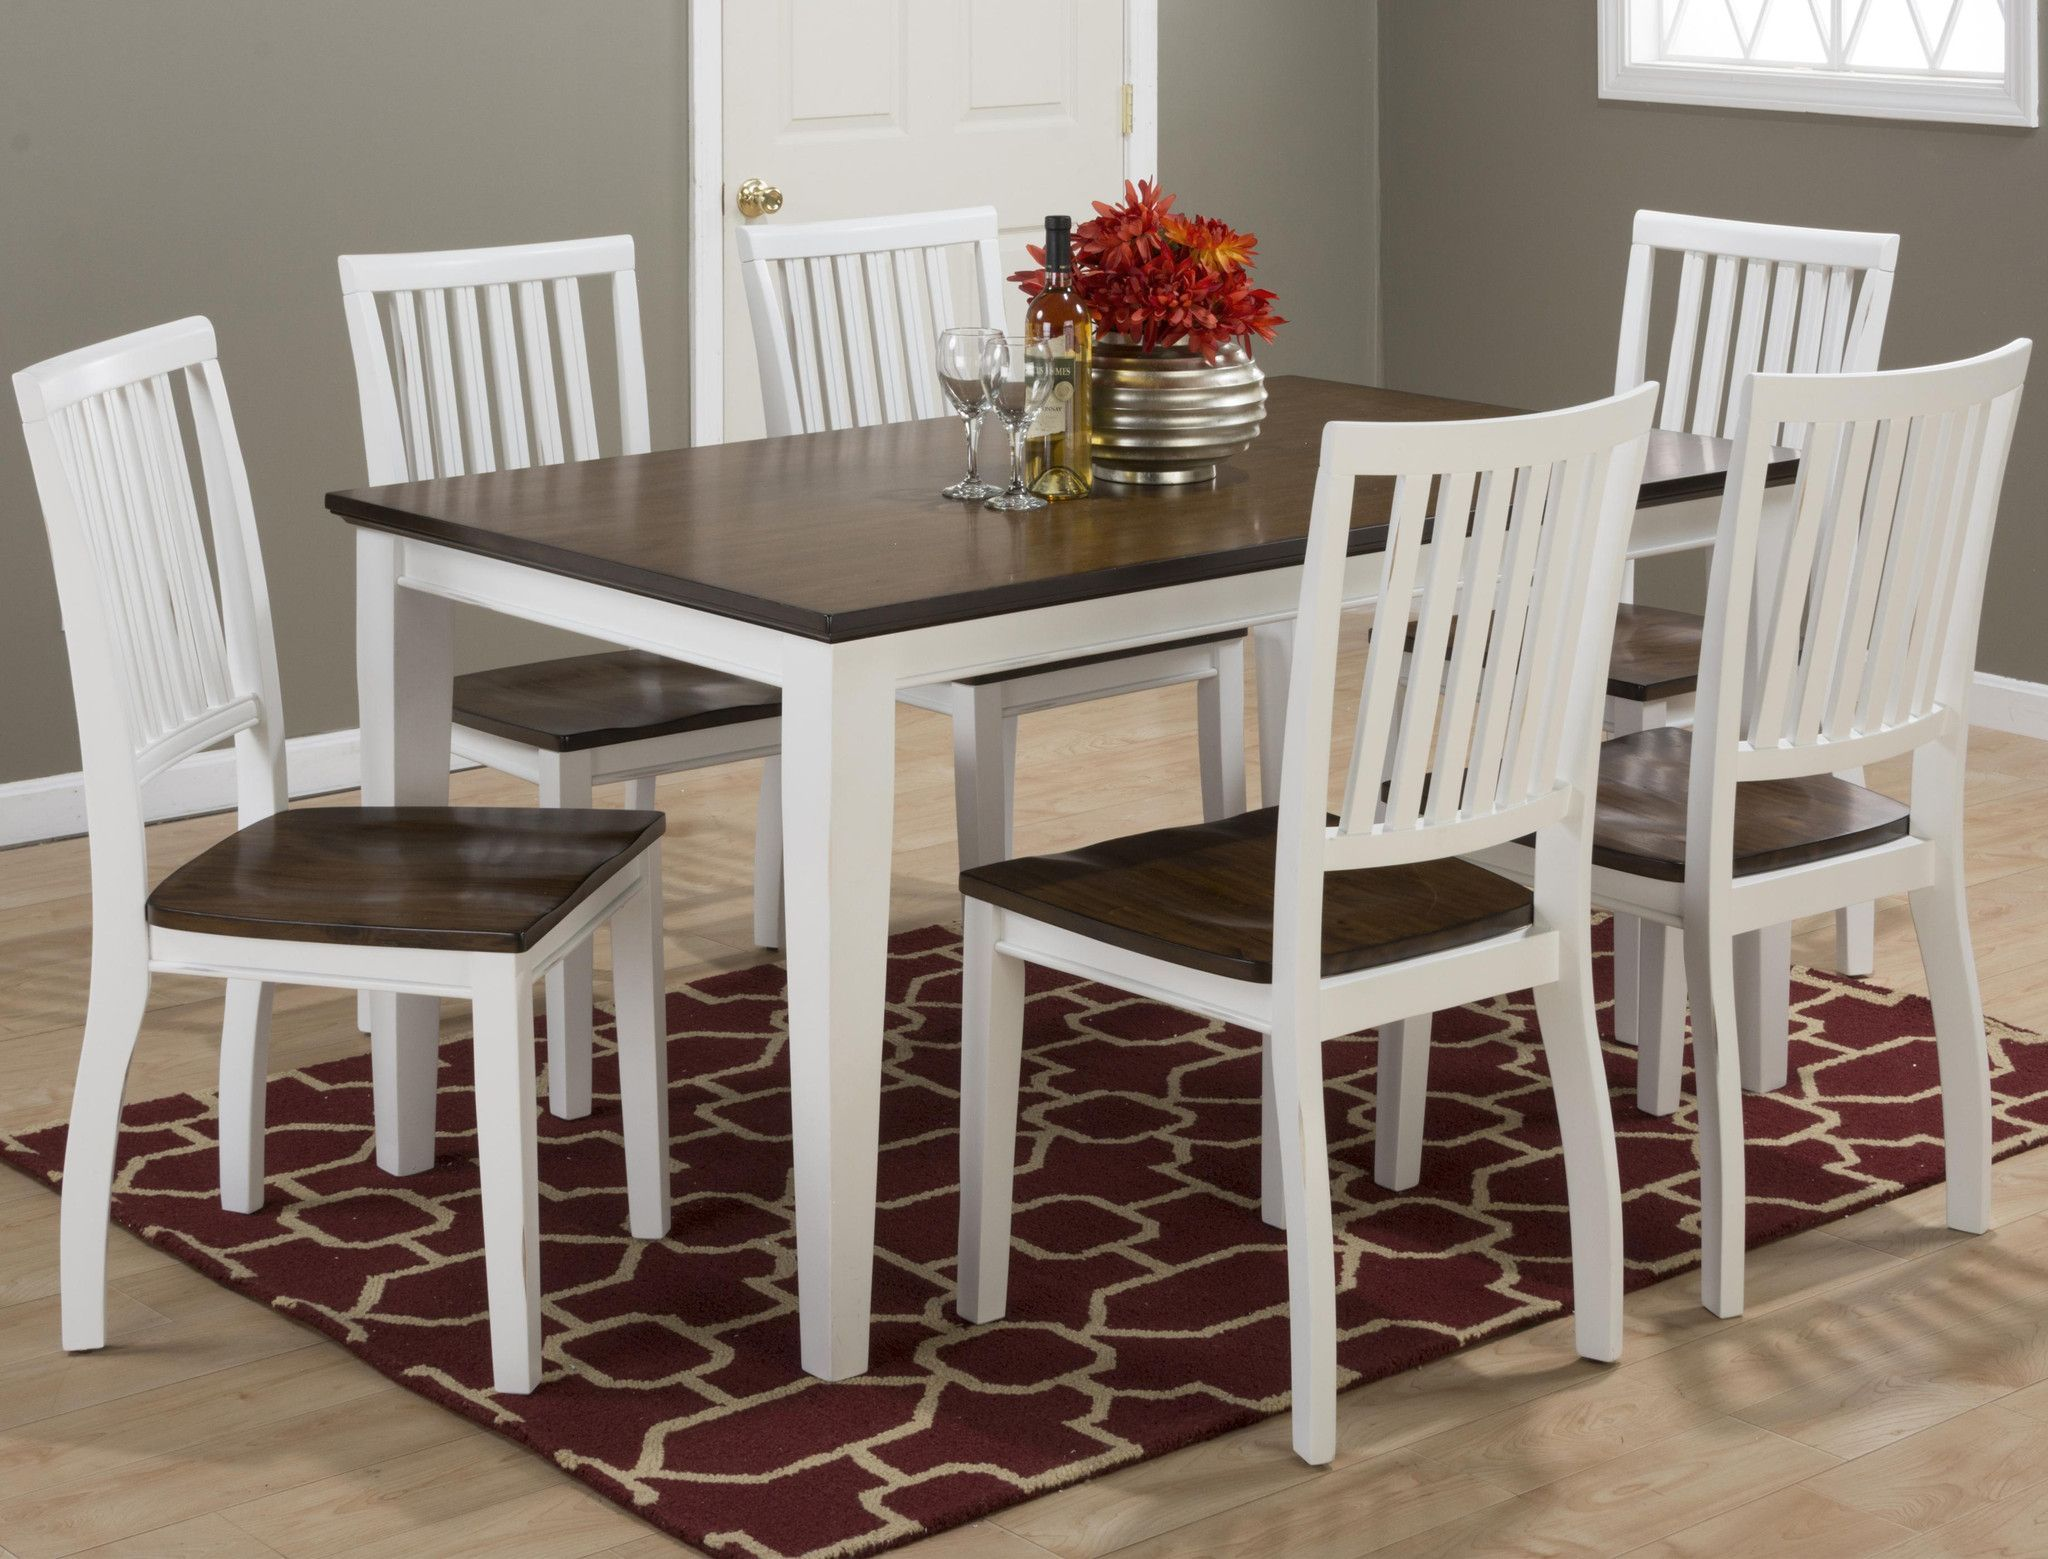 braden birch rectangular 6 person dining table and chair set